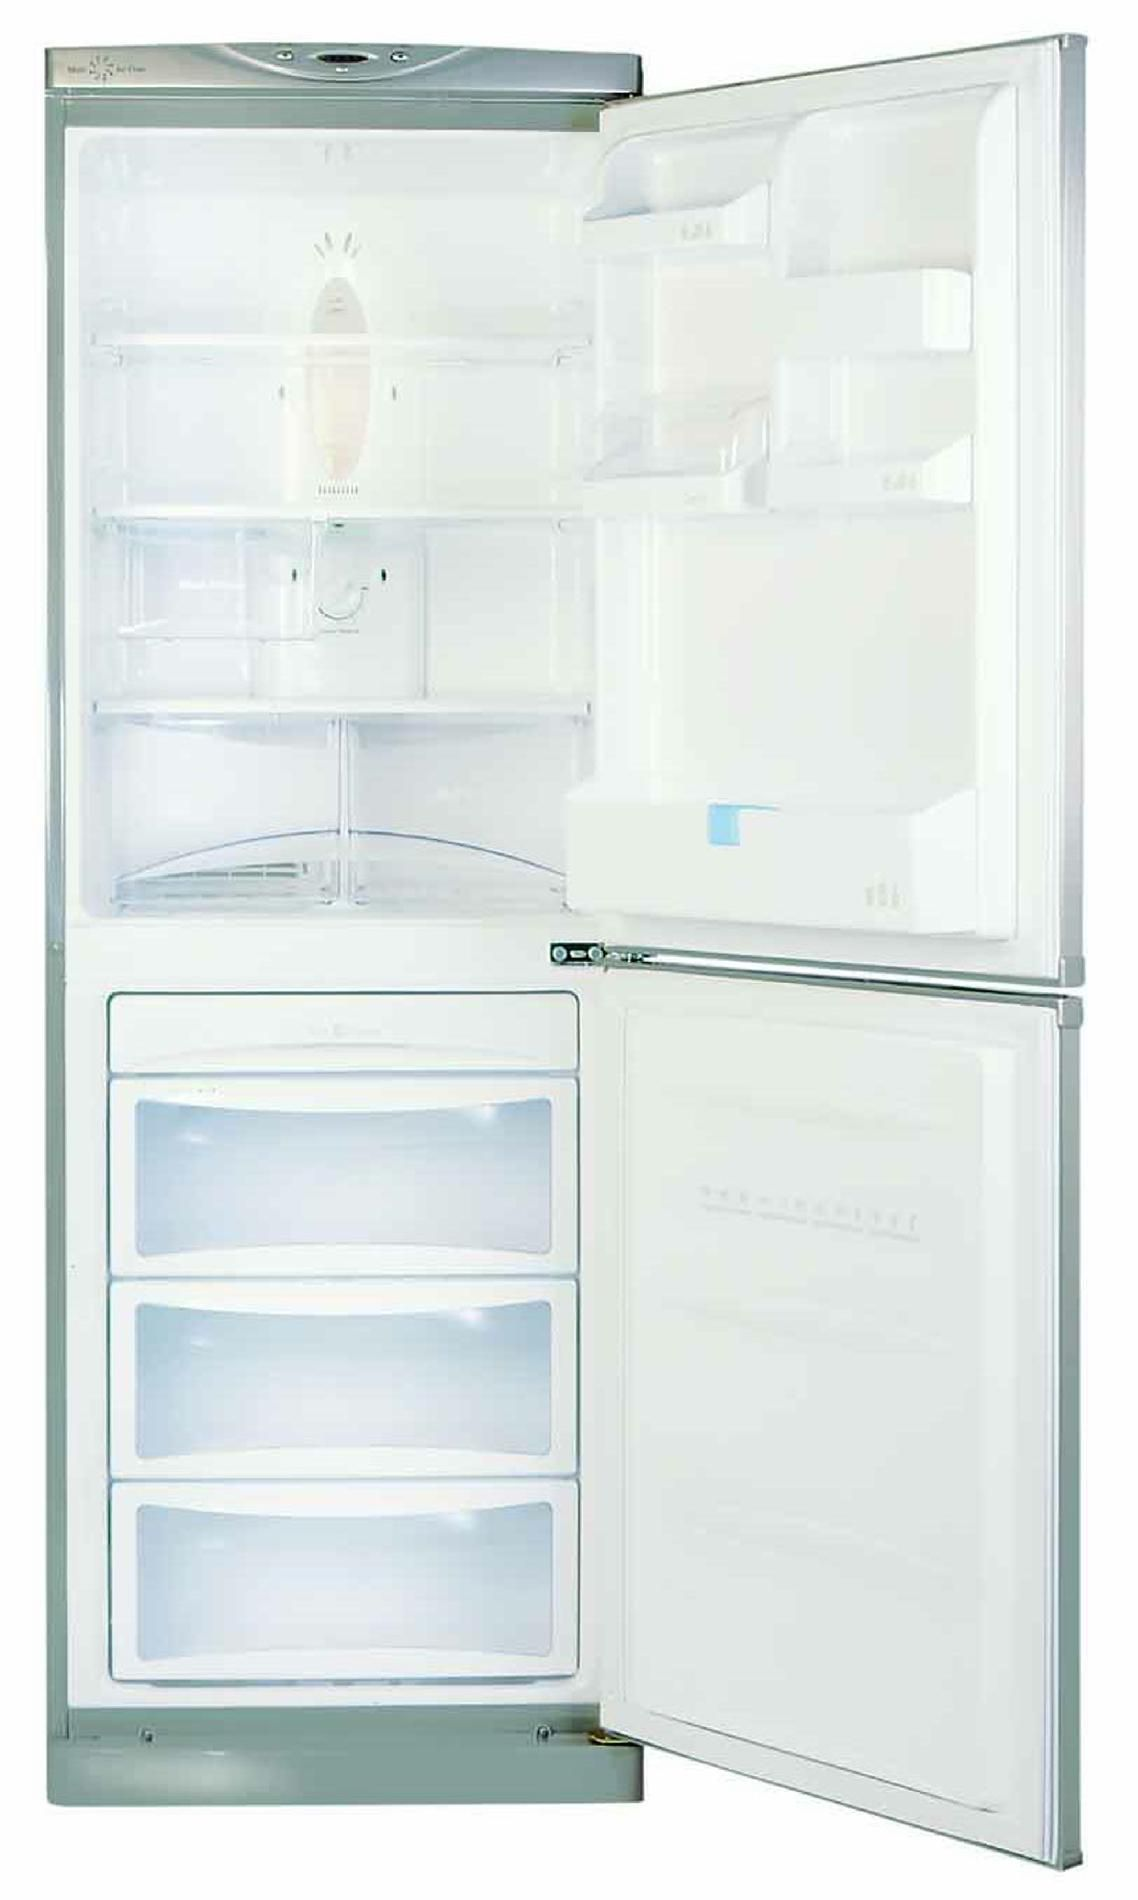 LG 10 cu. ft. Bottom-Freezer Refrigerator, Titanium